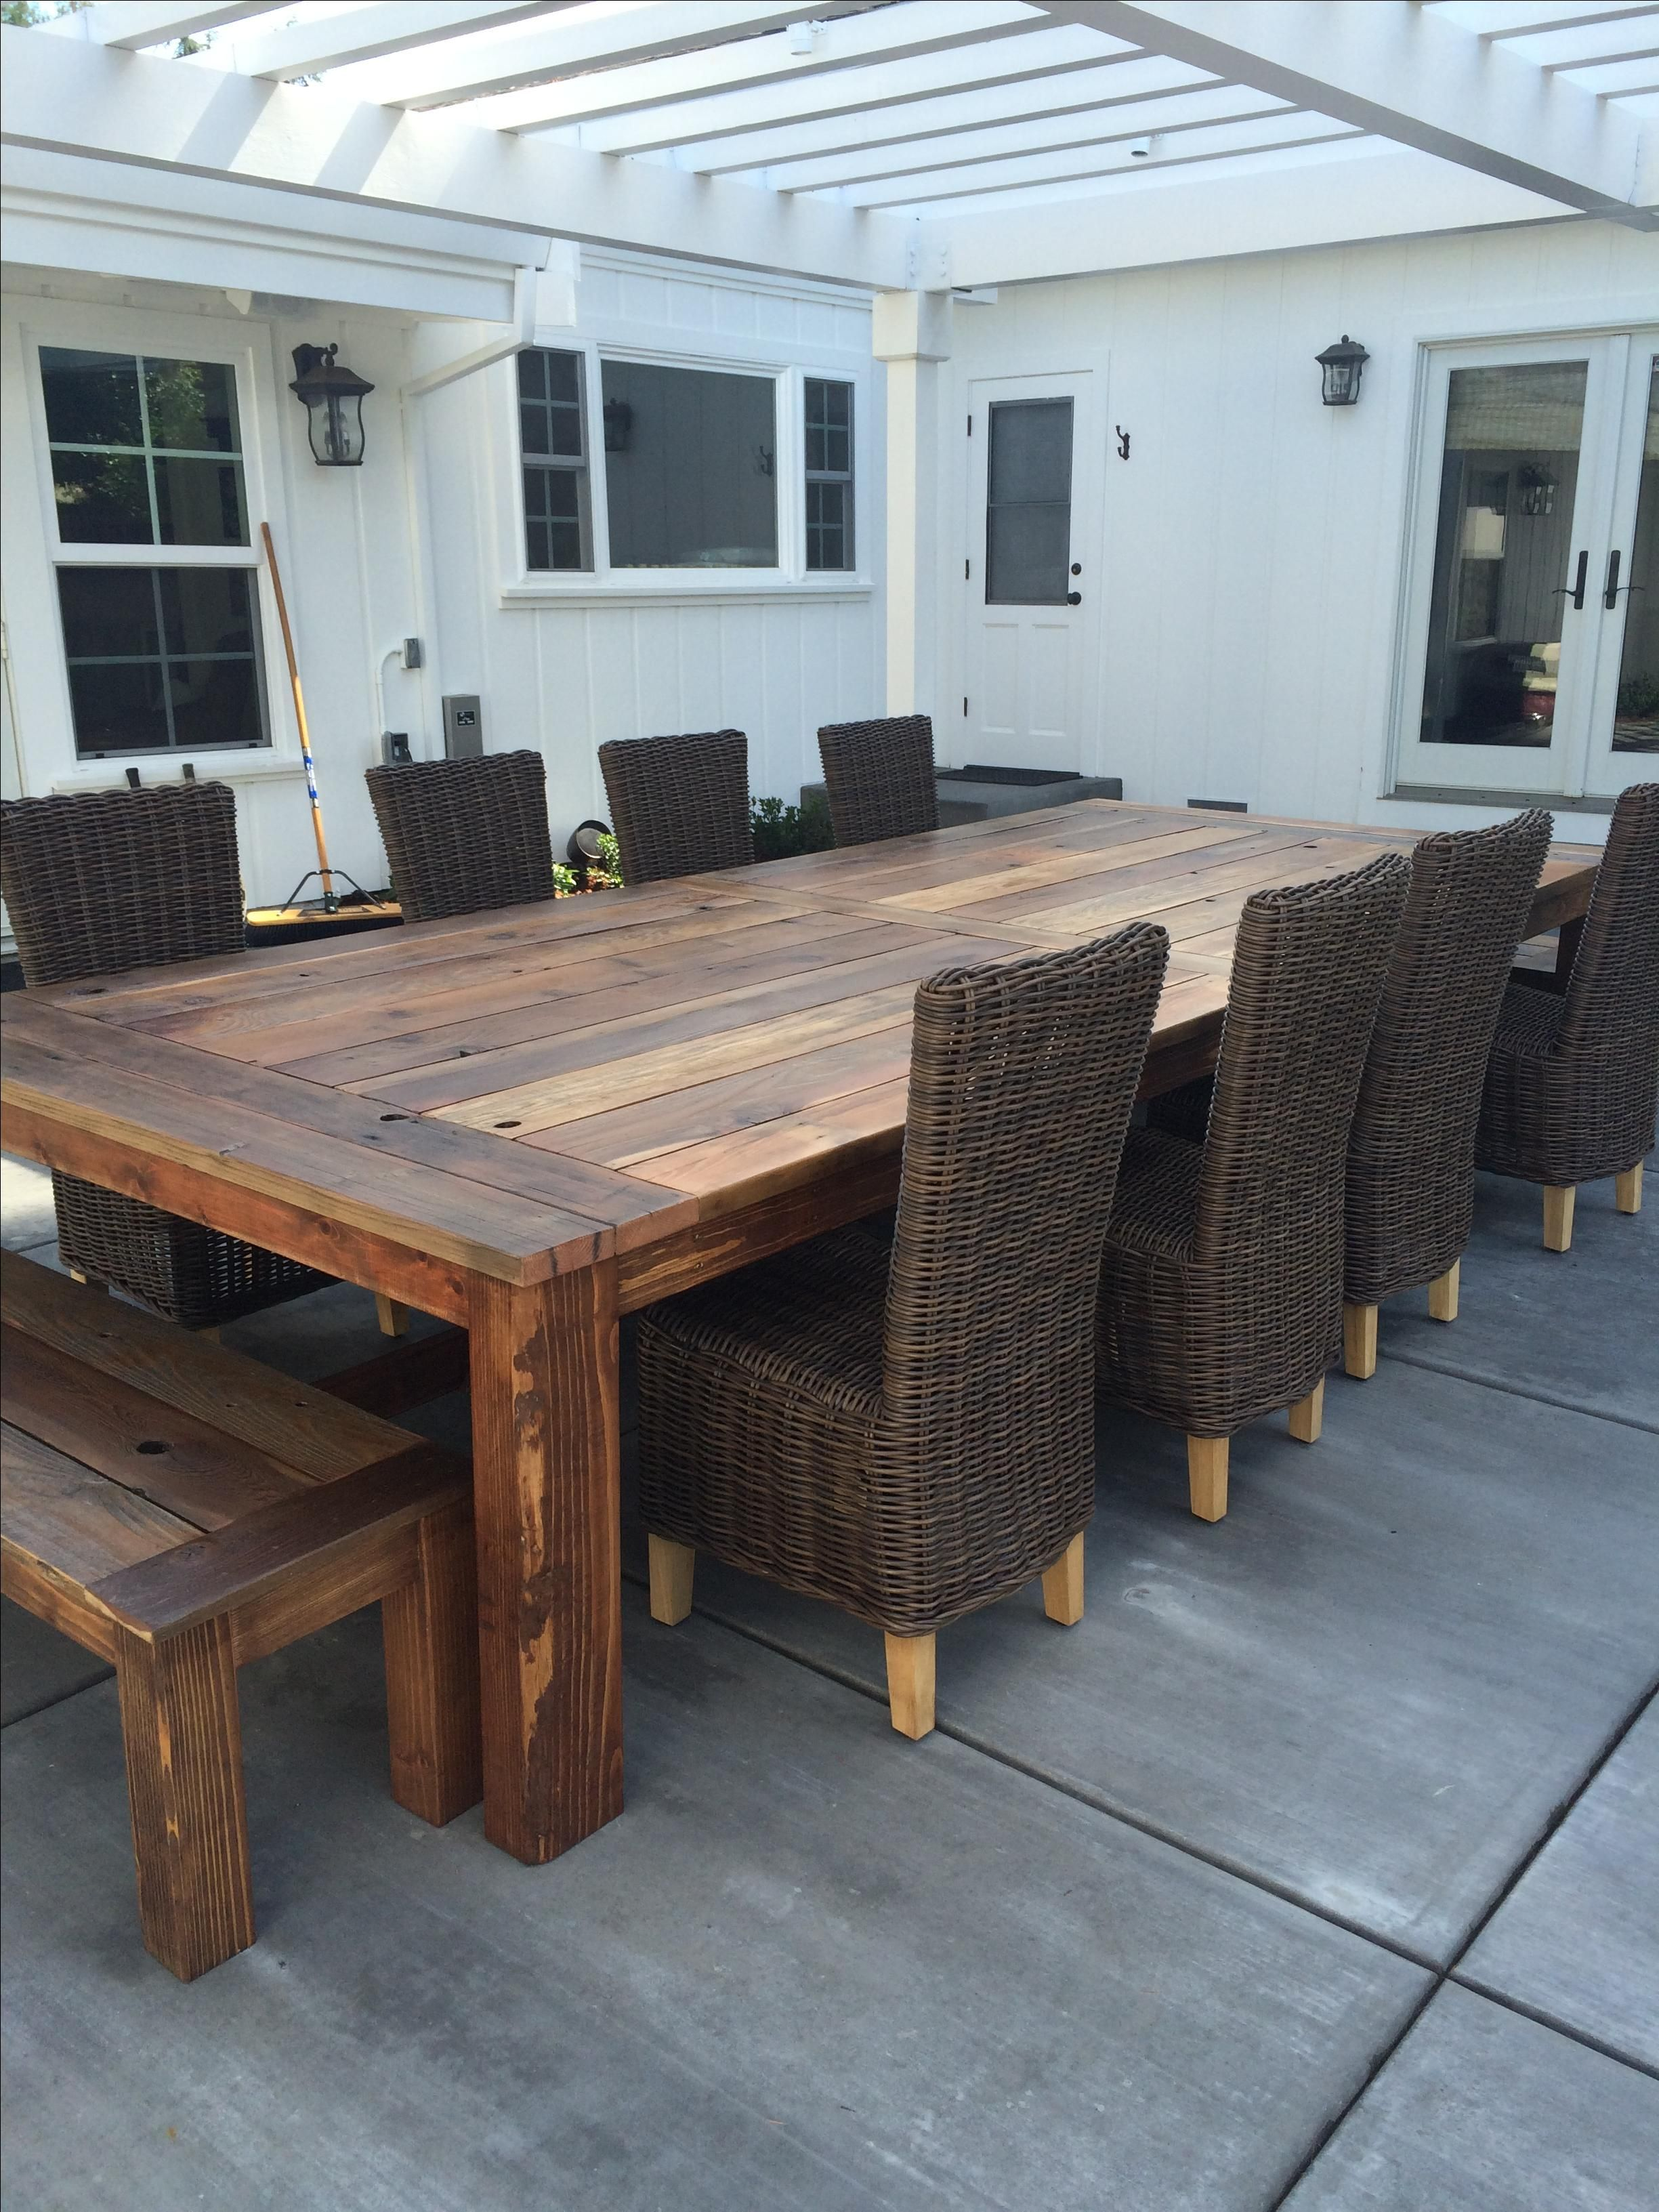 Using Outdoor Furniture Indoors Handmade Reclaimed Wood Farm Table Outdoor Or Indoor By